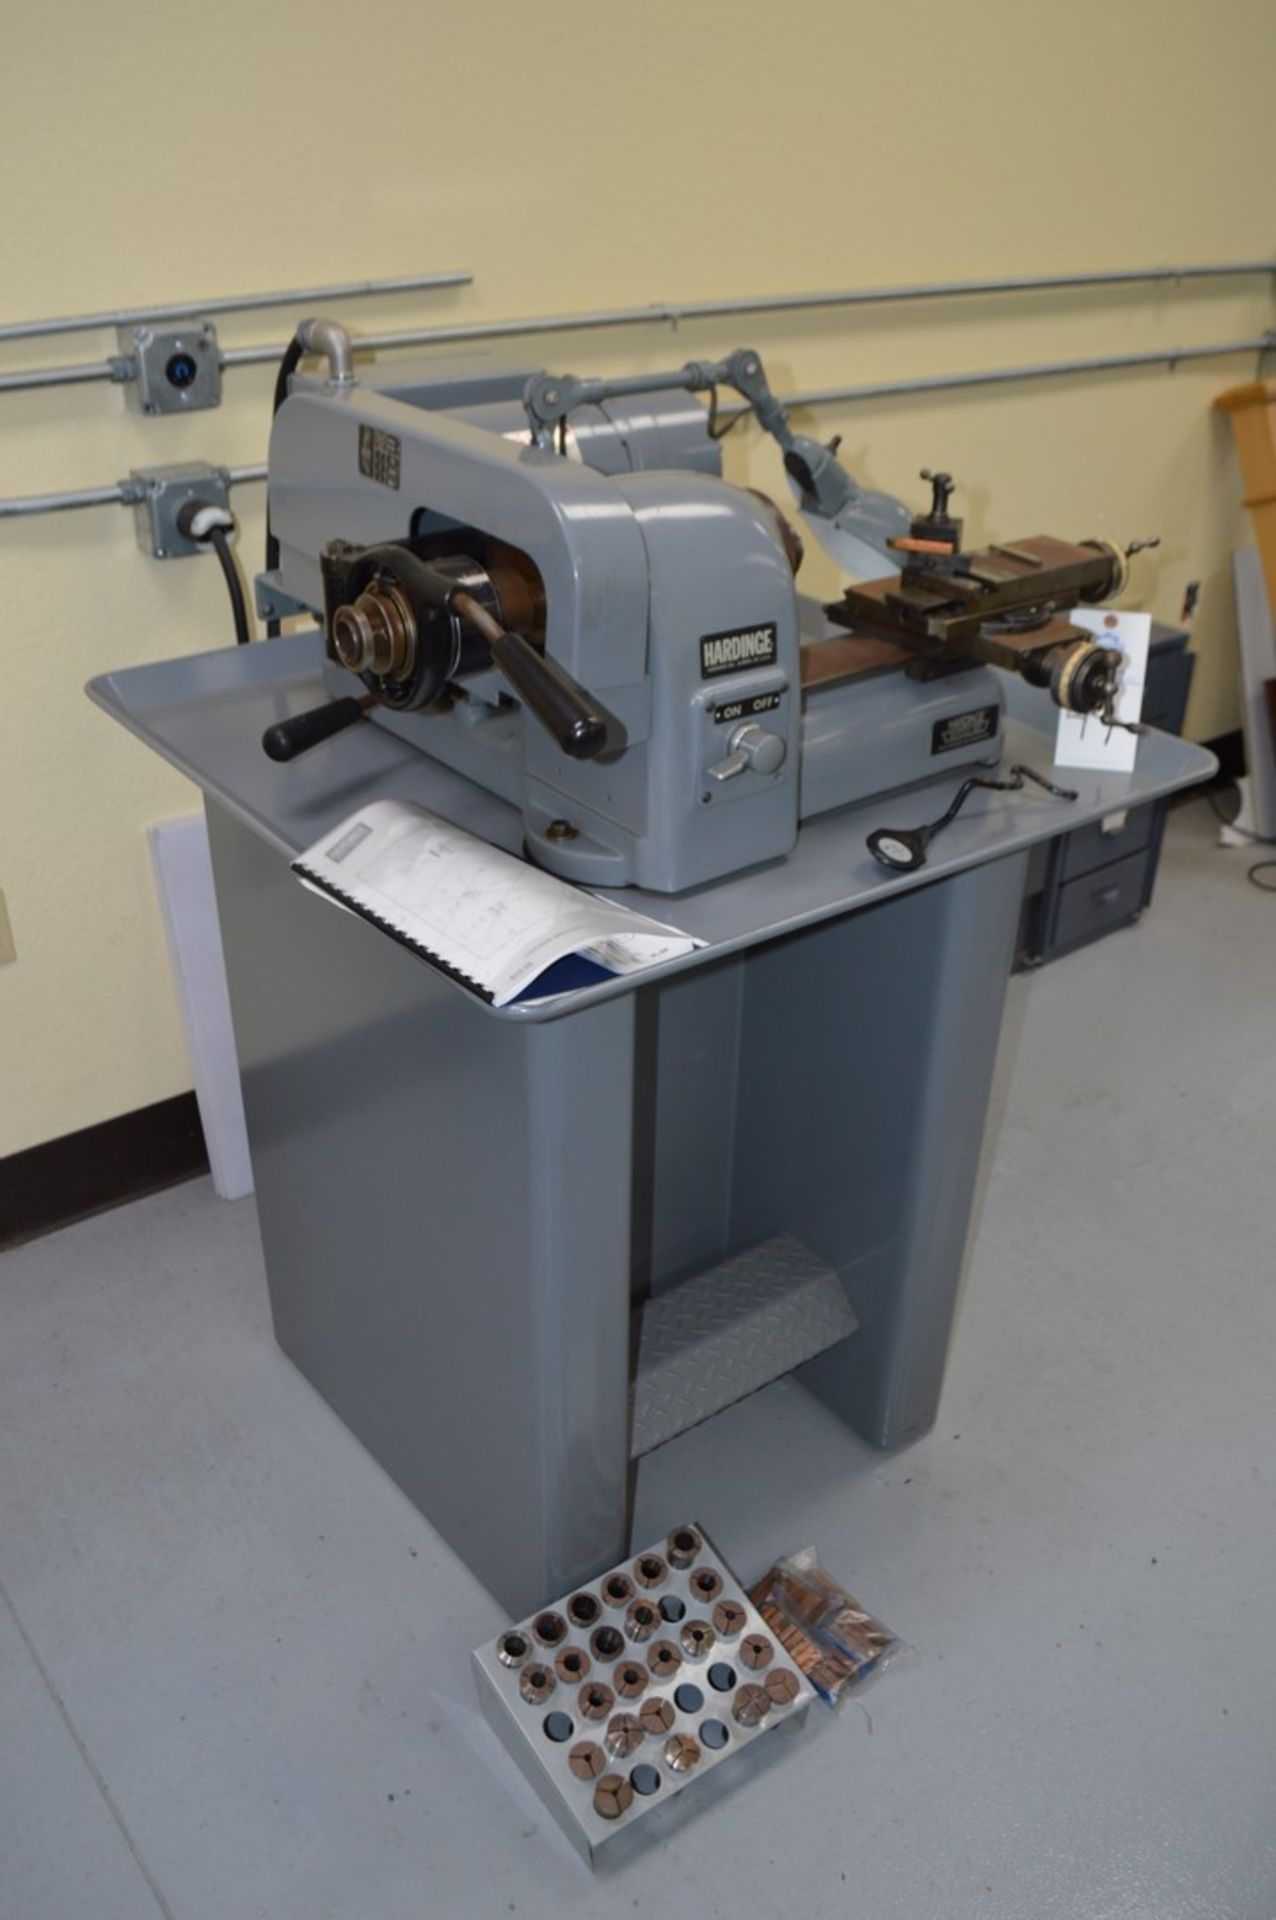 Hardinge HSL-Five Nine Super Precison Speed Lathe with collets and tooling,5c collet nose, dovetail - Image 3 of 5